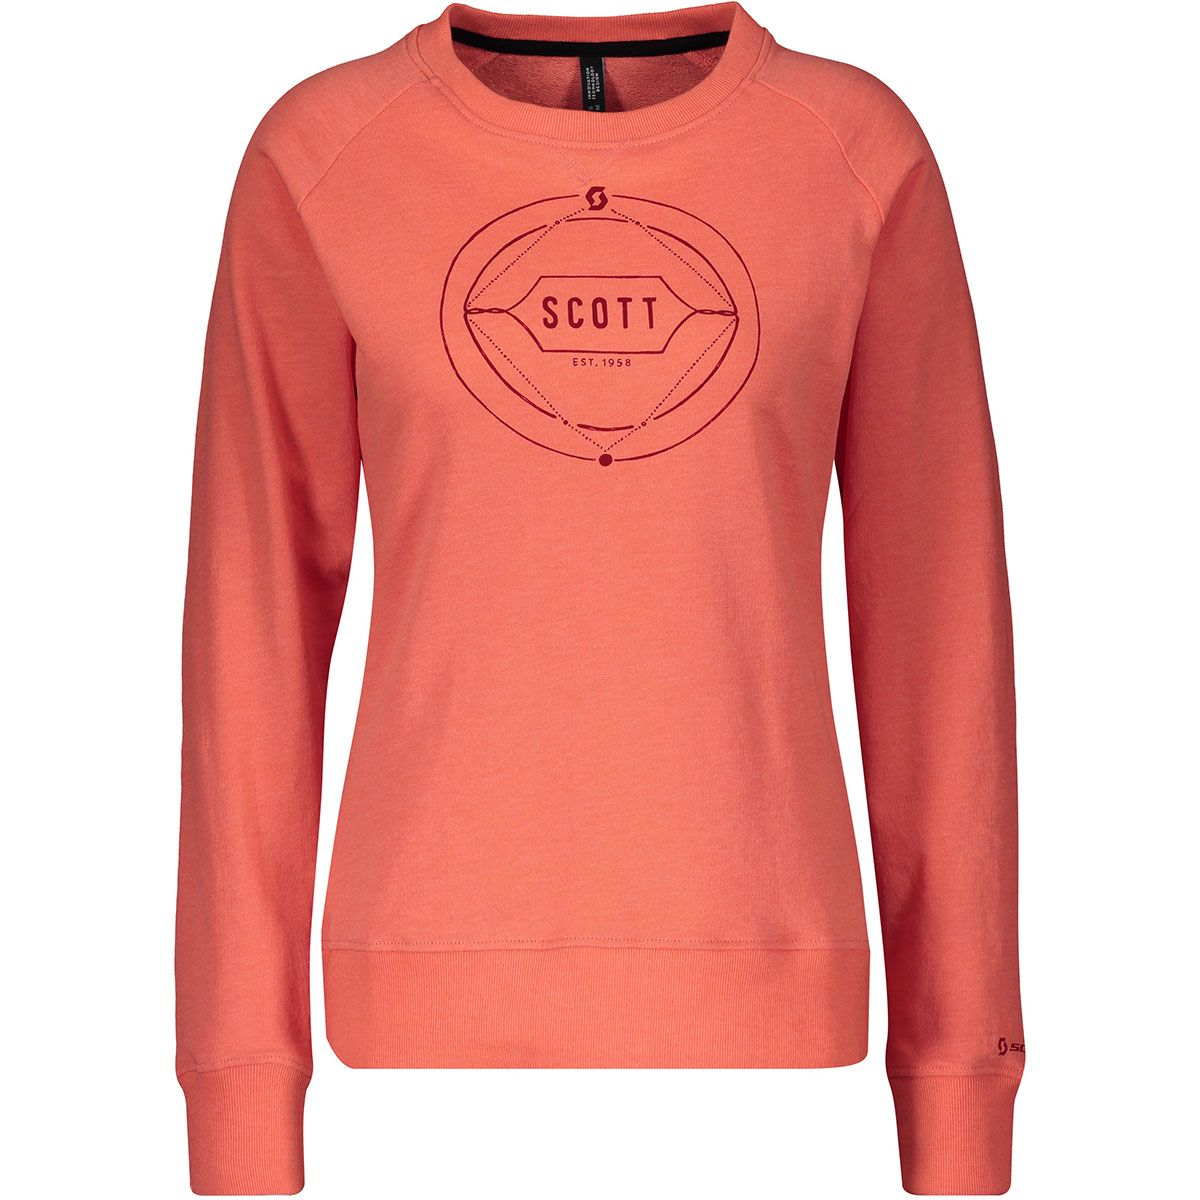 Scott Damen Crewneck Casual 10 Pullover (Größe L, Orange) | Pullover > Damen